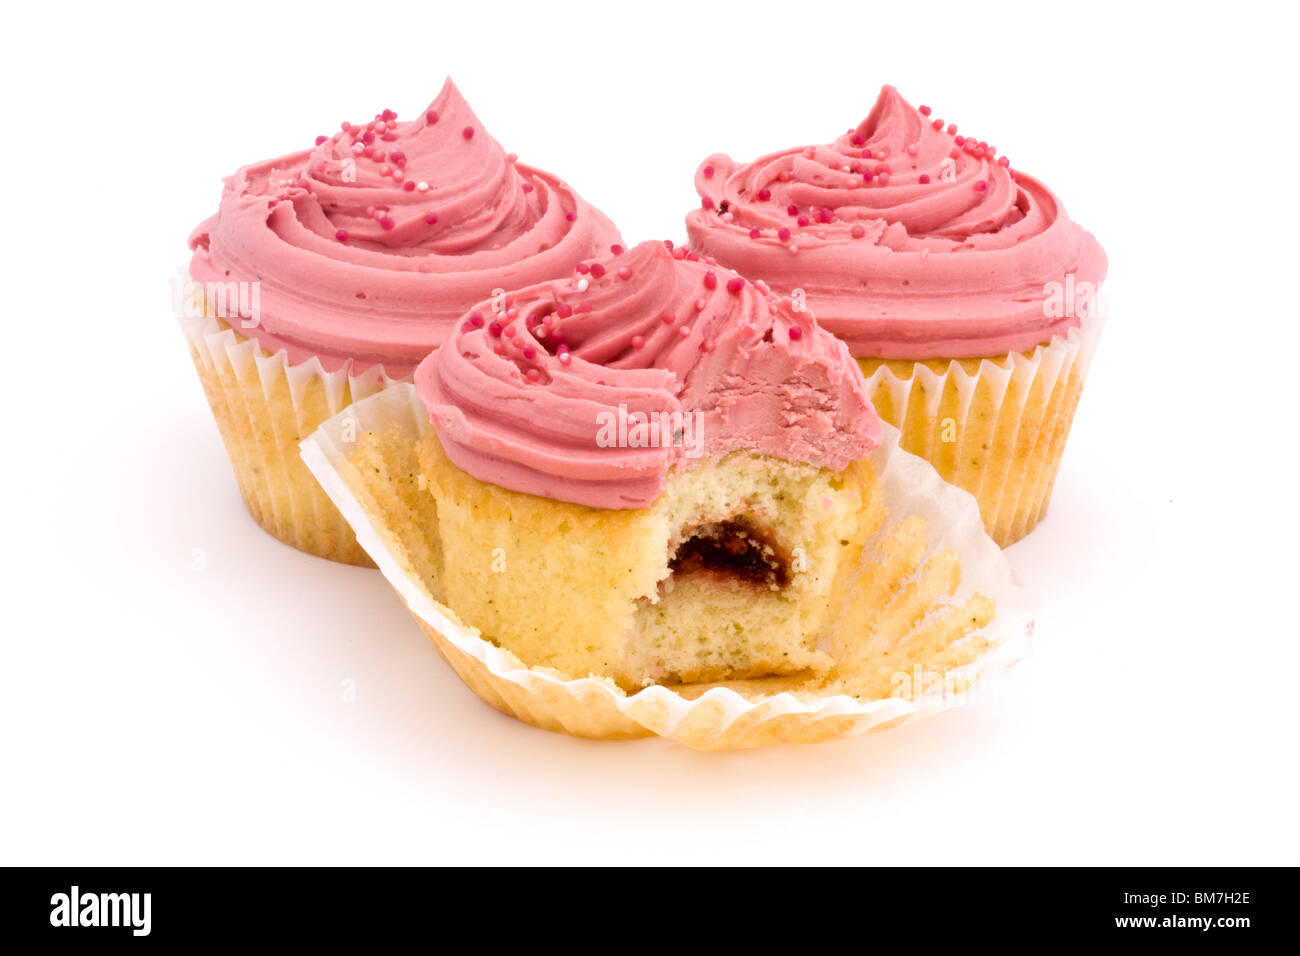 three pink cup cakes on a white background with one bite taken - Stock Image